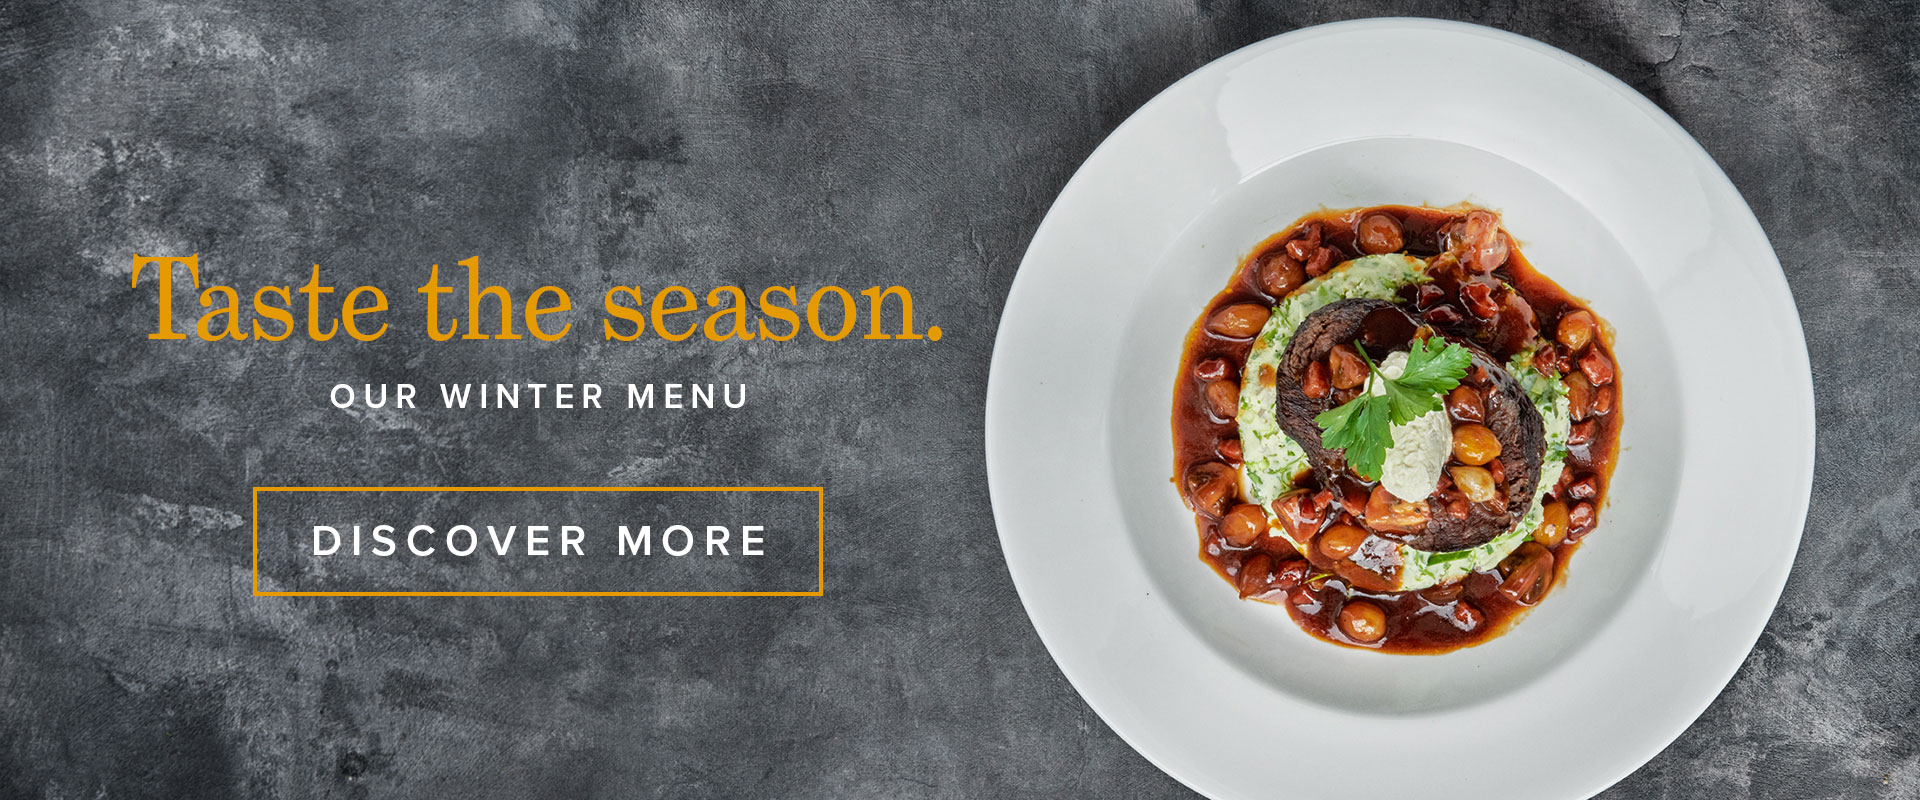 Taste The Season at Browns Brighton